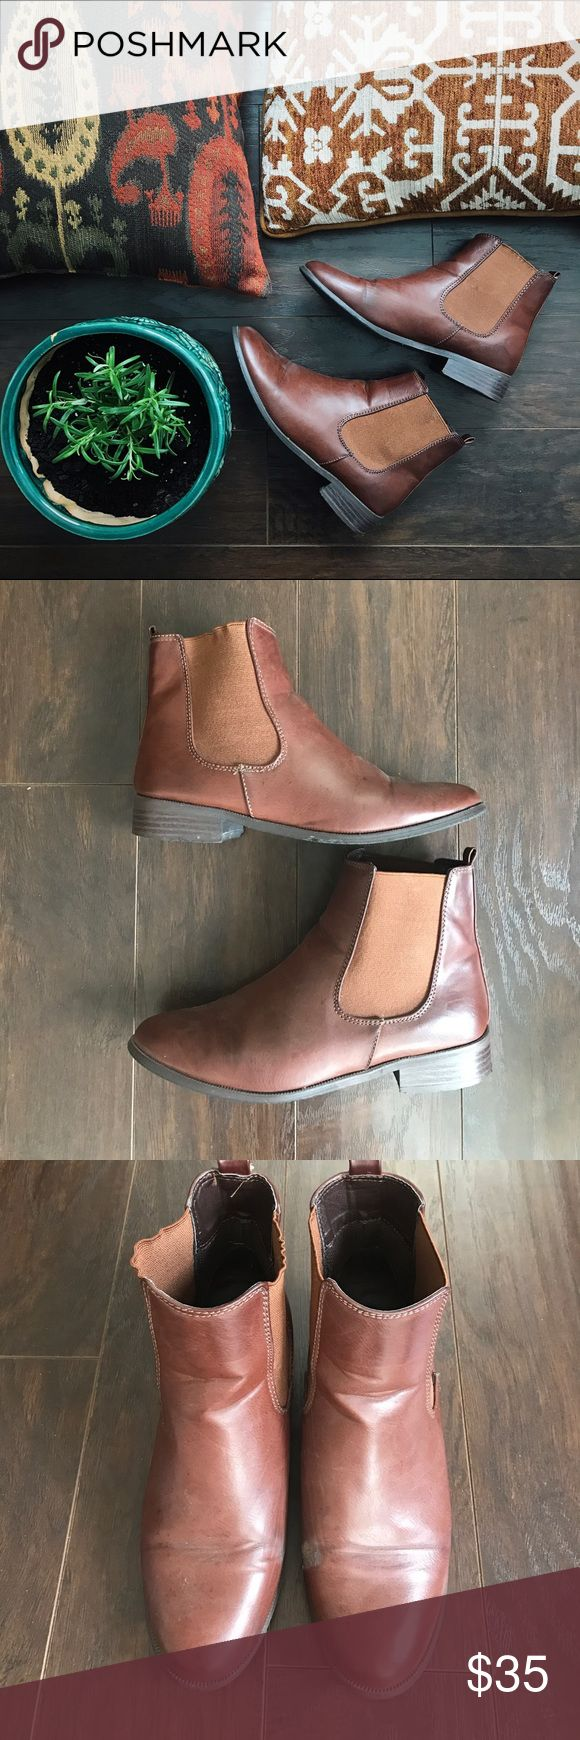 URBAN OUTFITTERS Brown Chelsea Boots Beautiful, deep brown, faux-leather chelsea boots by BDG (Urban Outfitters). Moderately worn, a few scuffs that are not noticeable when worn. Good used condition. These are a closet staple! Urban Outfitters Shoes Ankle Boots & Booties